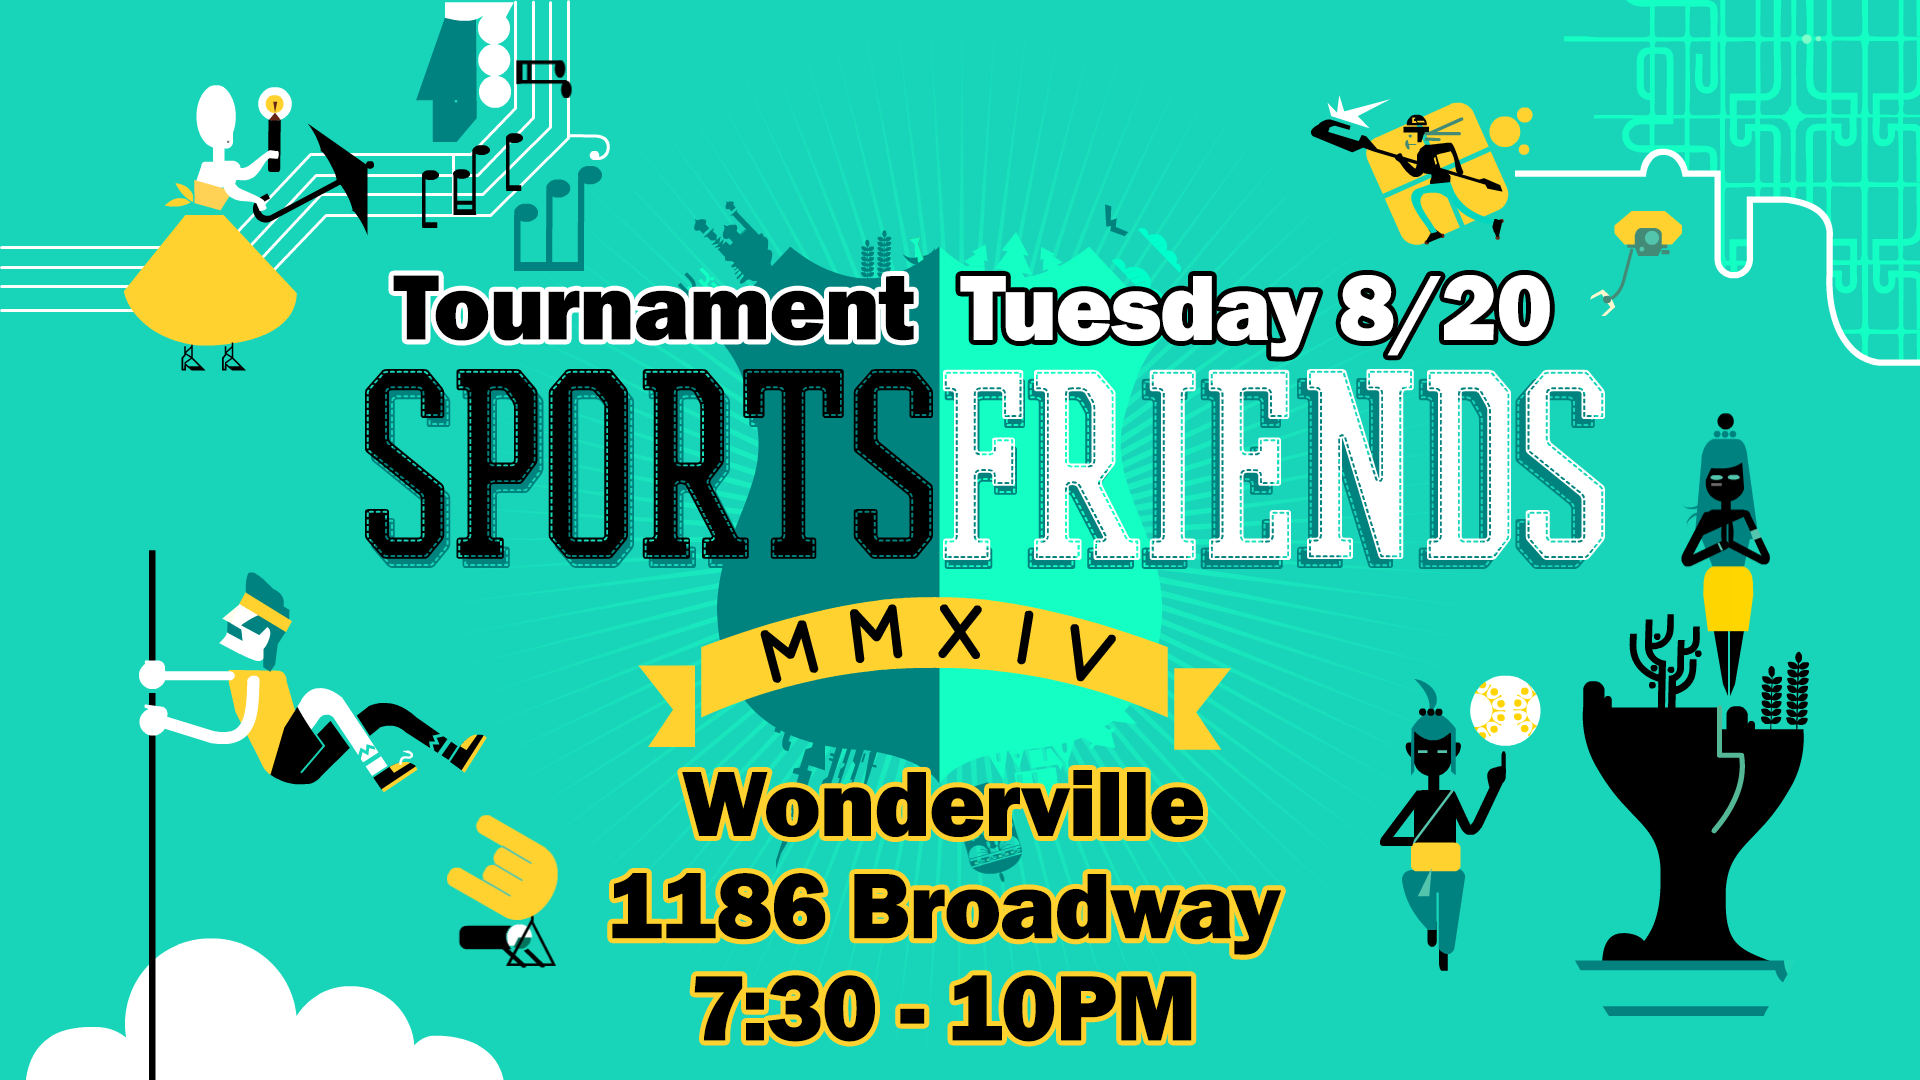 RSVP:  https://withfriends.co/Event/2349007/SPORTSFRIENDS_Tournament